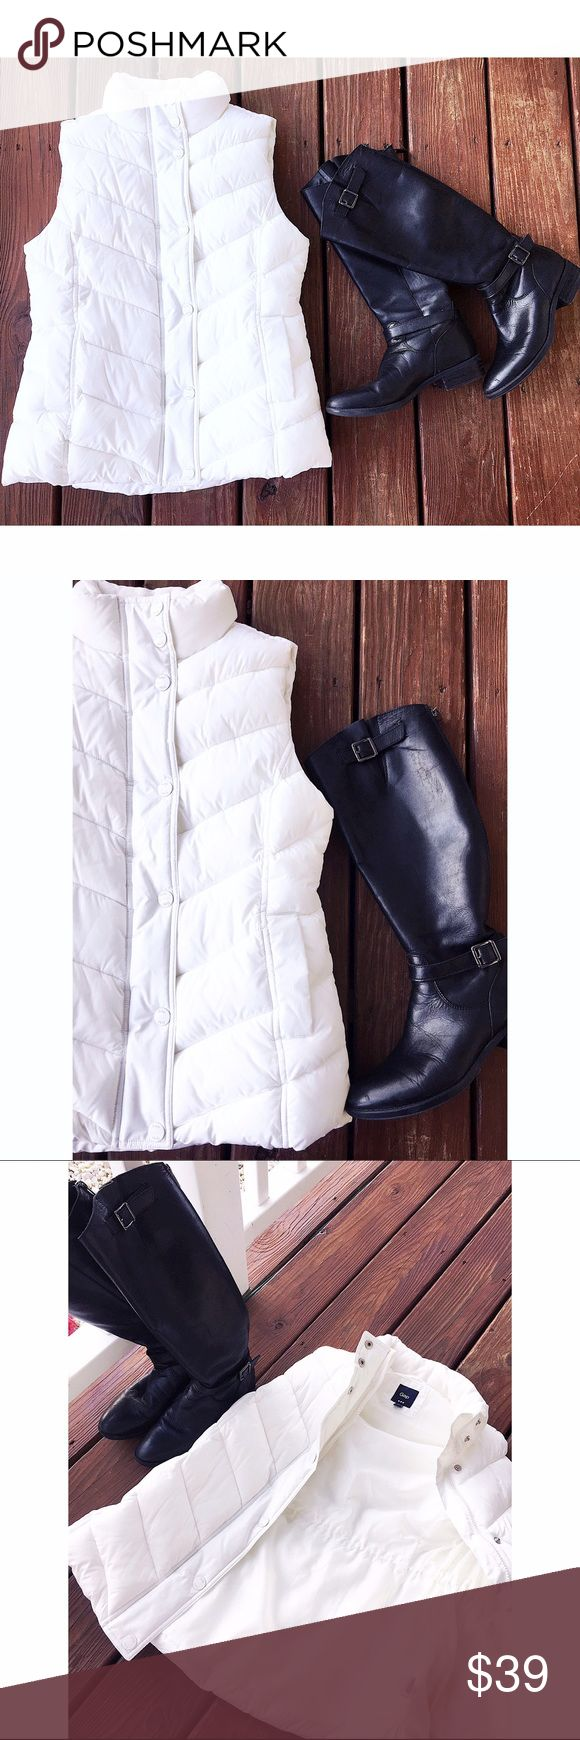 💲Cyber Monday Sale💲NWT! White Gap puffer vest White Gap puffer vest! 2 side pockets✔️ 7 front white buttons✔️zipper✔️elastic stringe inside the coat  to cinch the waist✔️ this vest is so white and pretty like a winter wonderland ❄️❄️❄️❄️❄️❄️❄️❄️❄️❄️❄️❄️❄️❄️❄️make an offer ❤️️no trades thank you GAP Jackets & Coats Vests